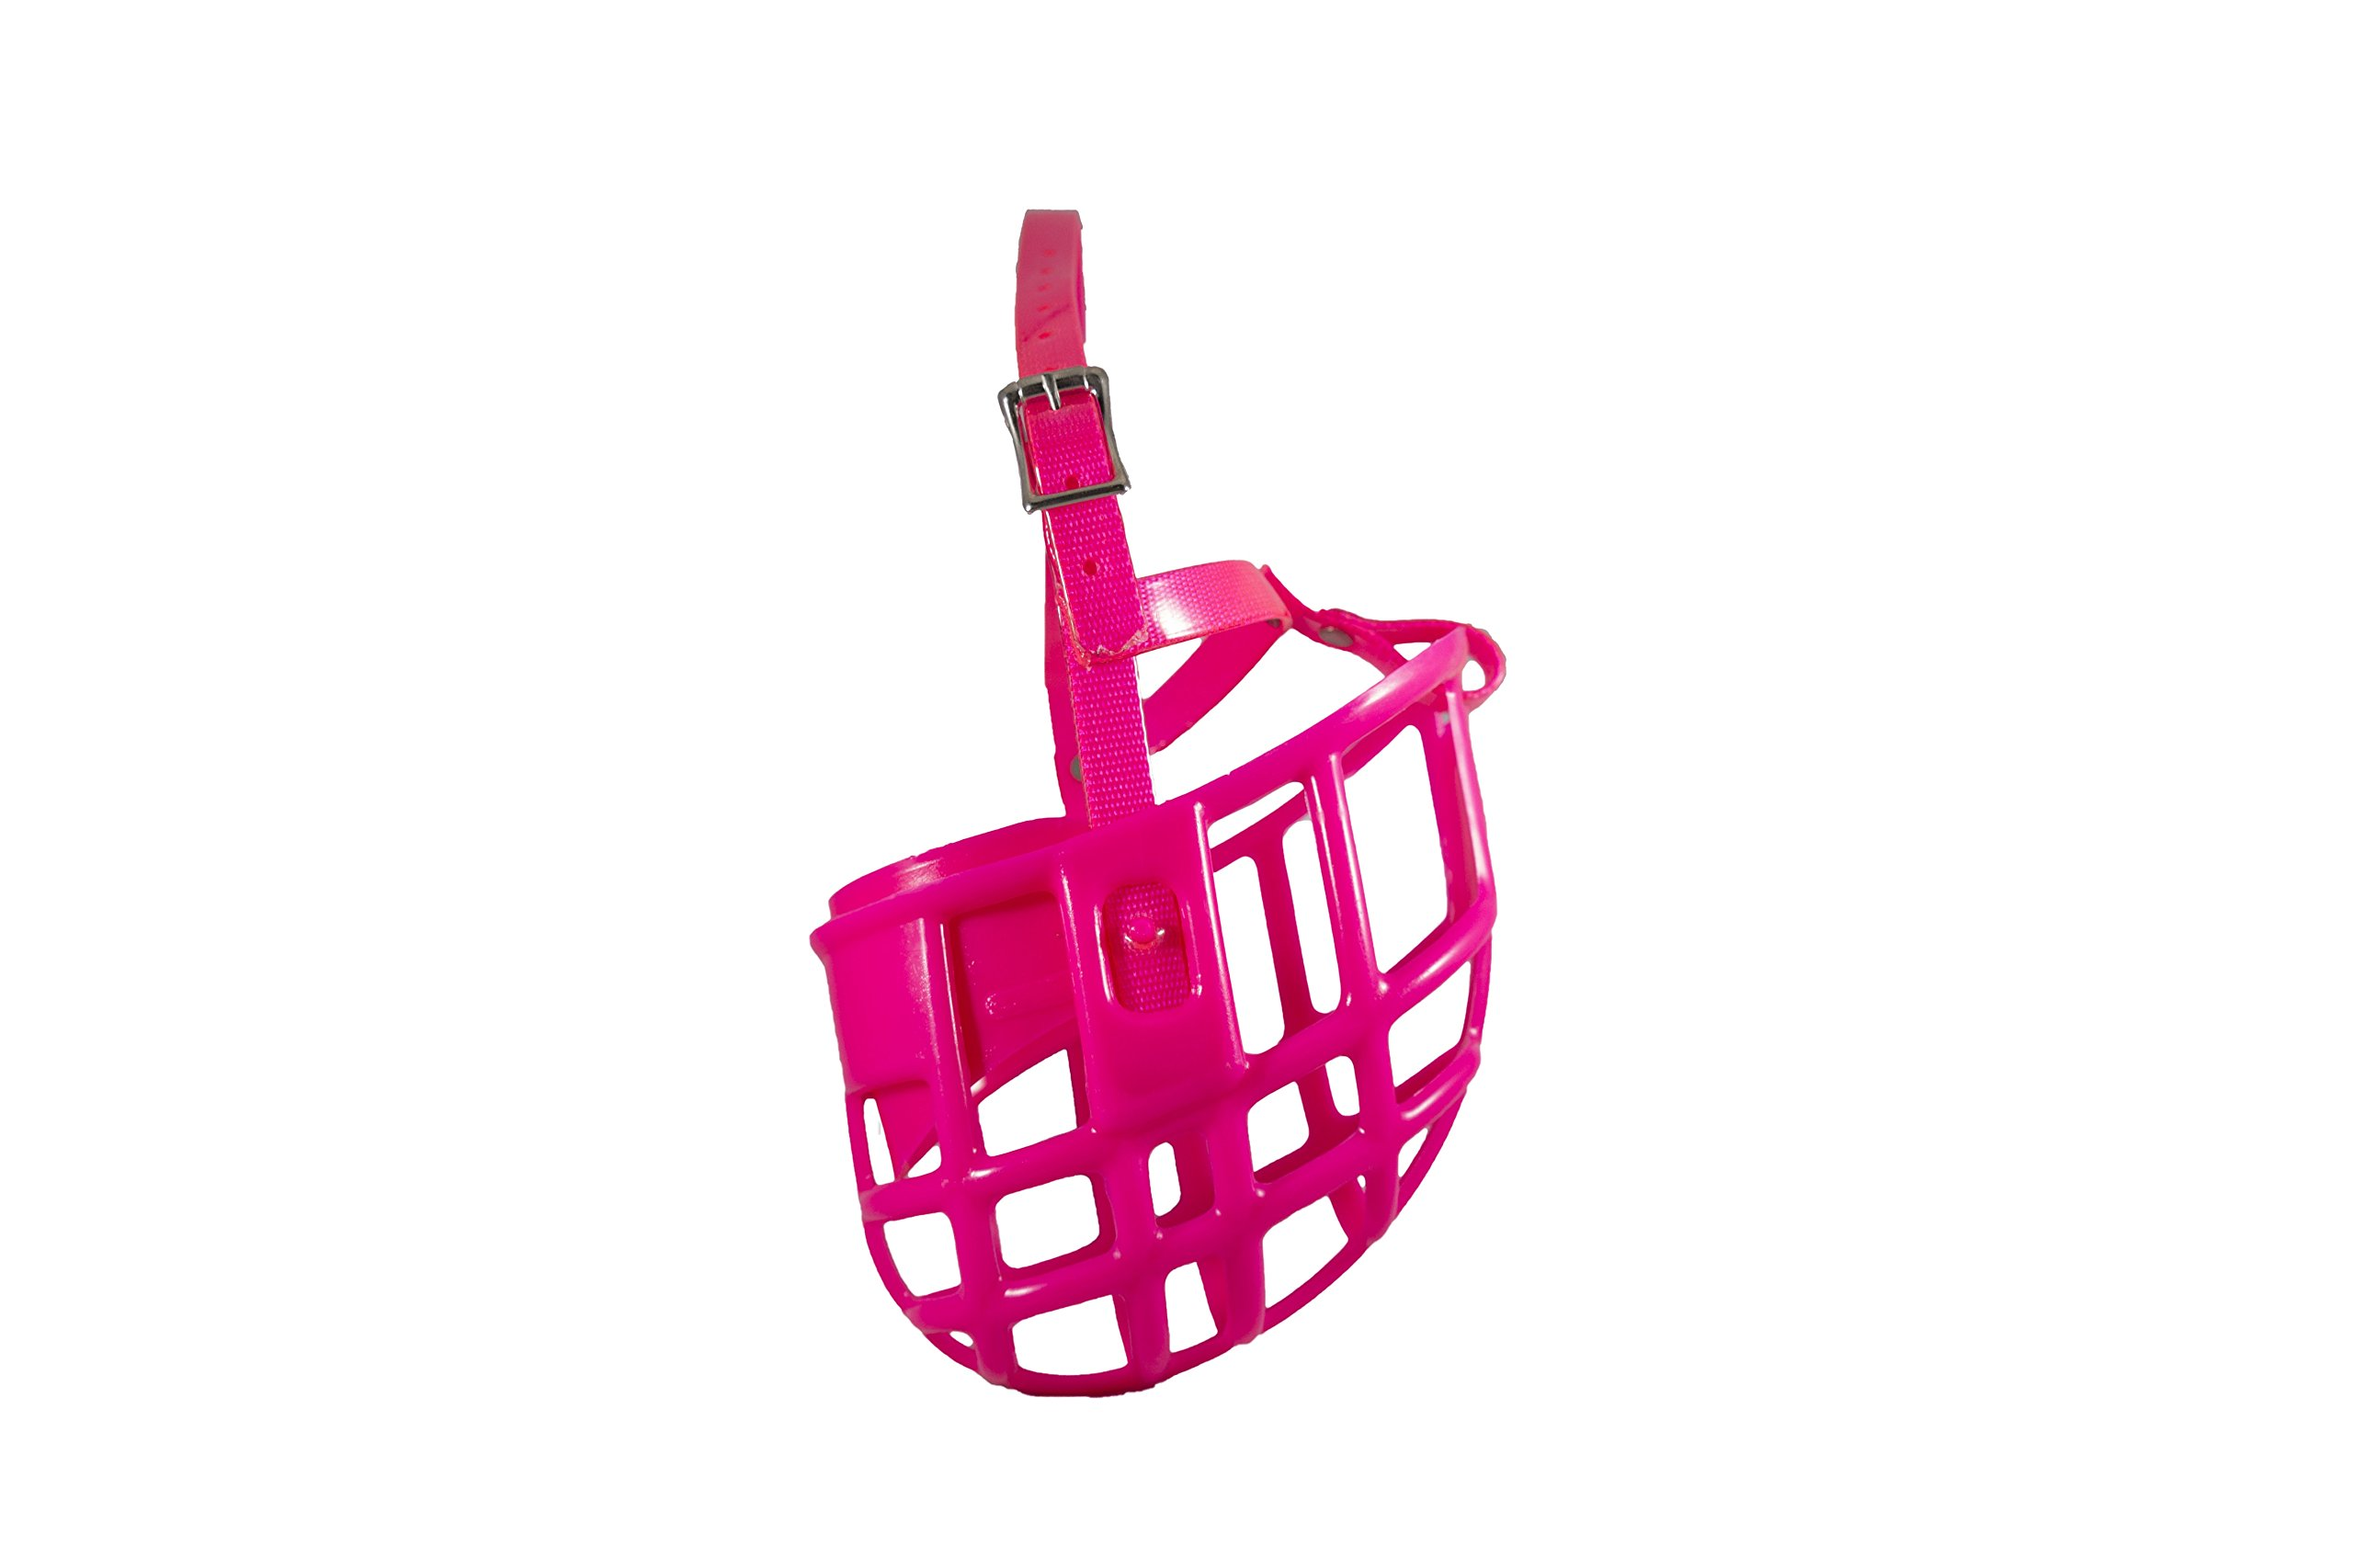 Birdwell Enterprises - Plastic Dog Muzzle with Adjustable Plastic Coated Nylon Headstall - Made in The USA - (Large, Pink)